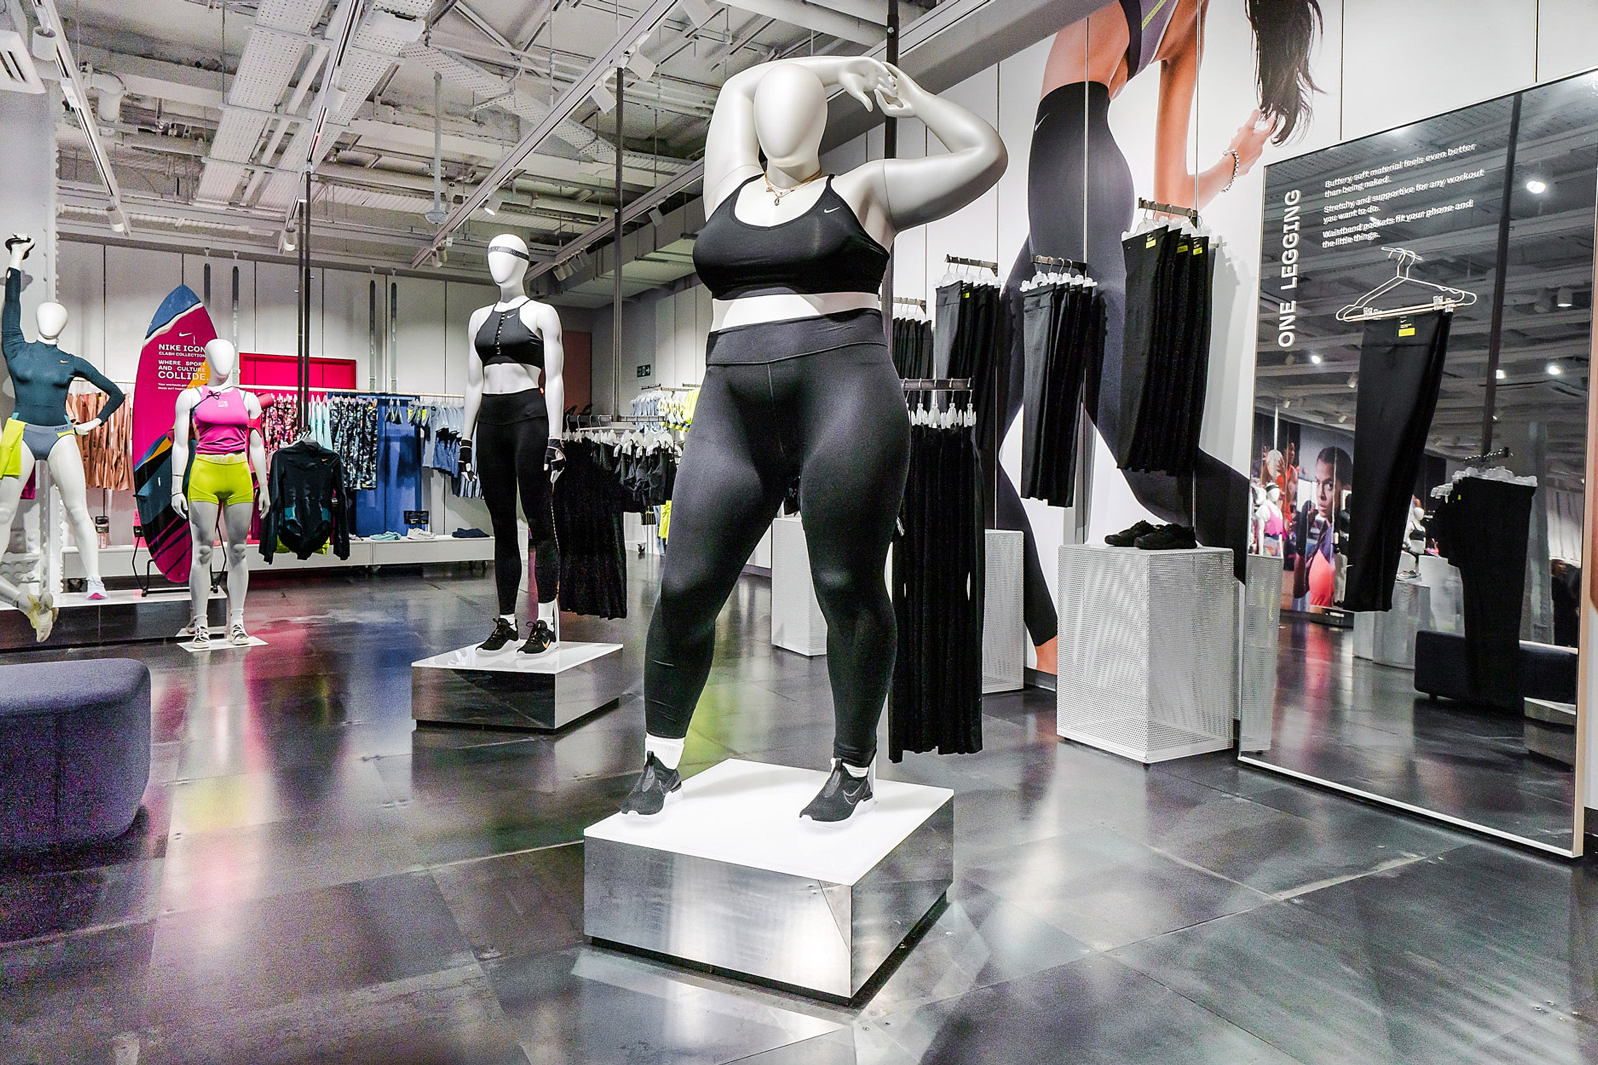 Nike plus-sized mannequins. A Mark Zuckerberg deepfake video on Instagram. Mary Meeker's trends report.